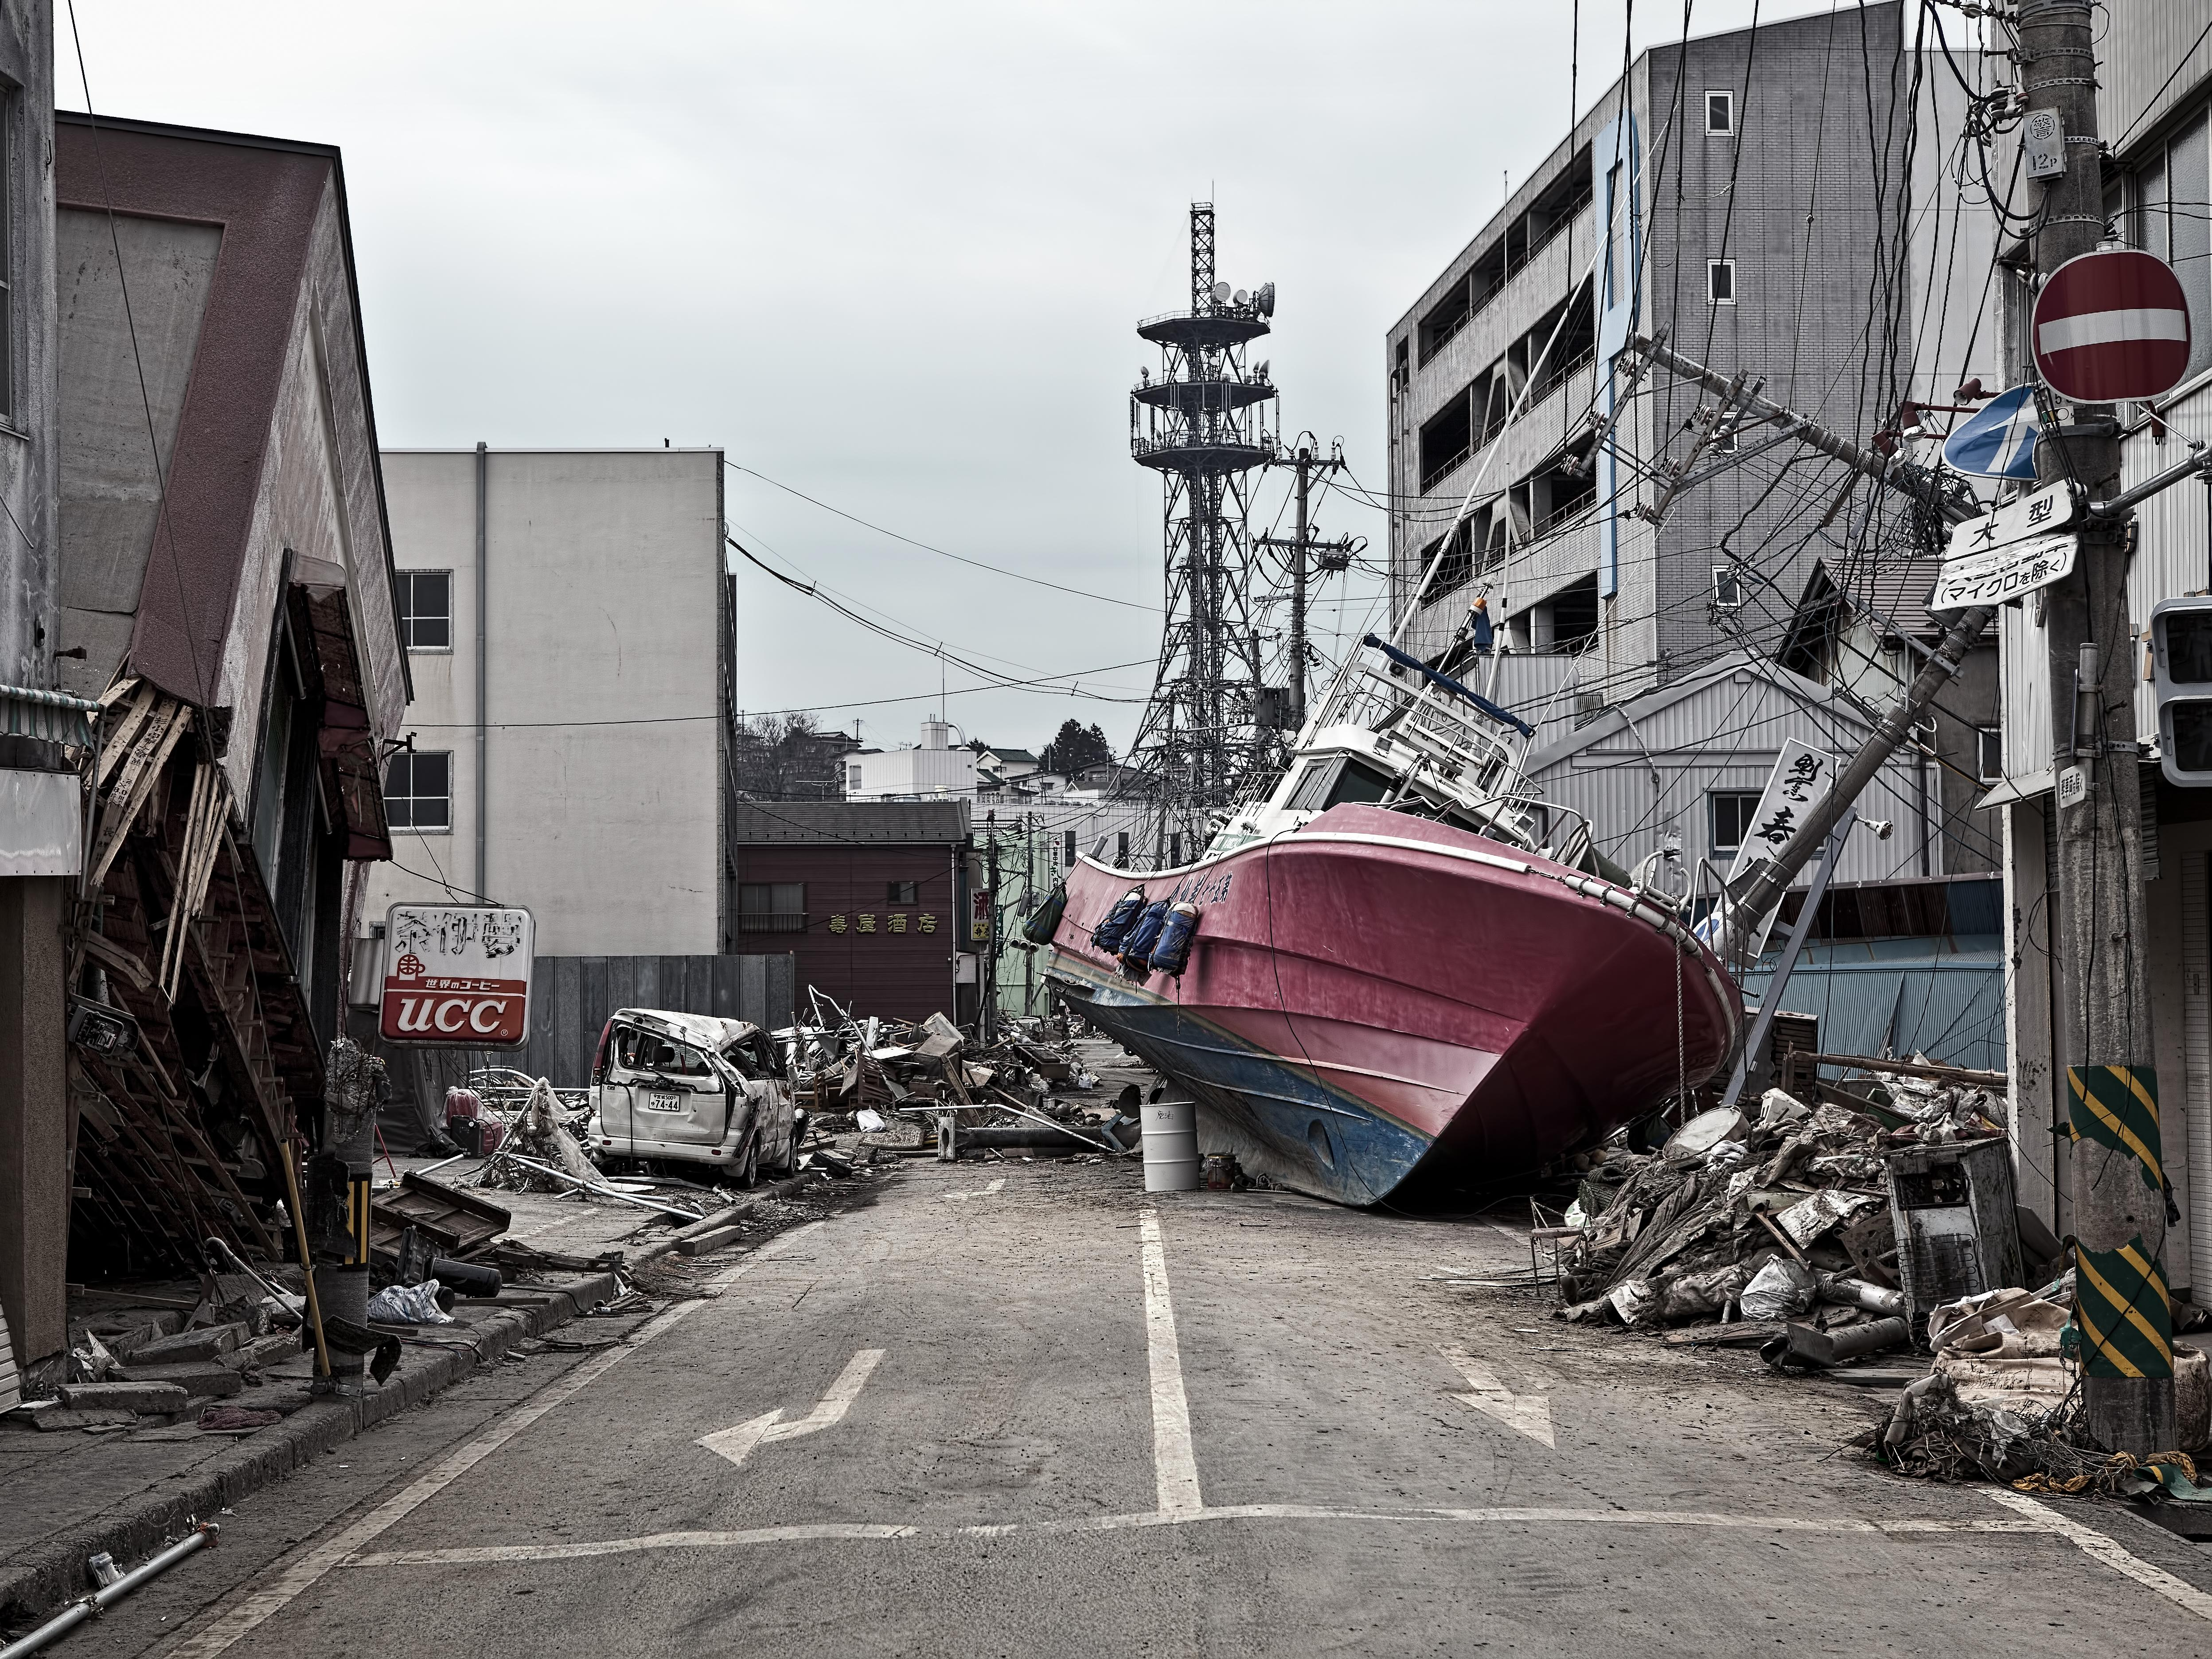 Impact of the 2011 he Great East Japan Earthquake and Tsunami on Fukushima, Japan.